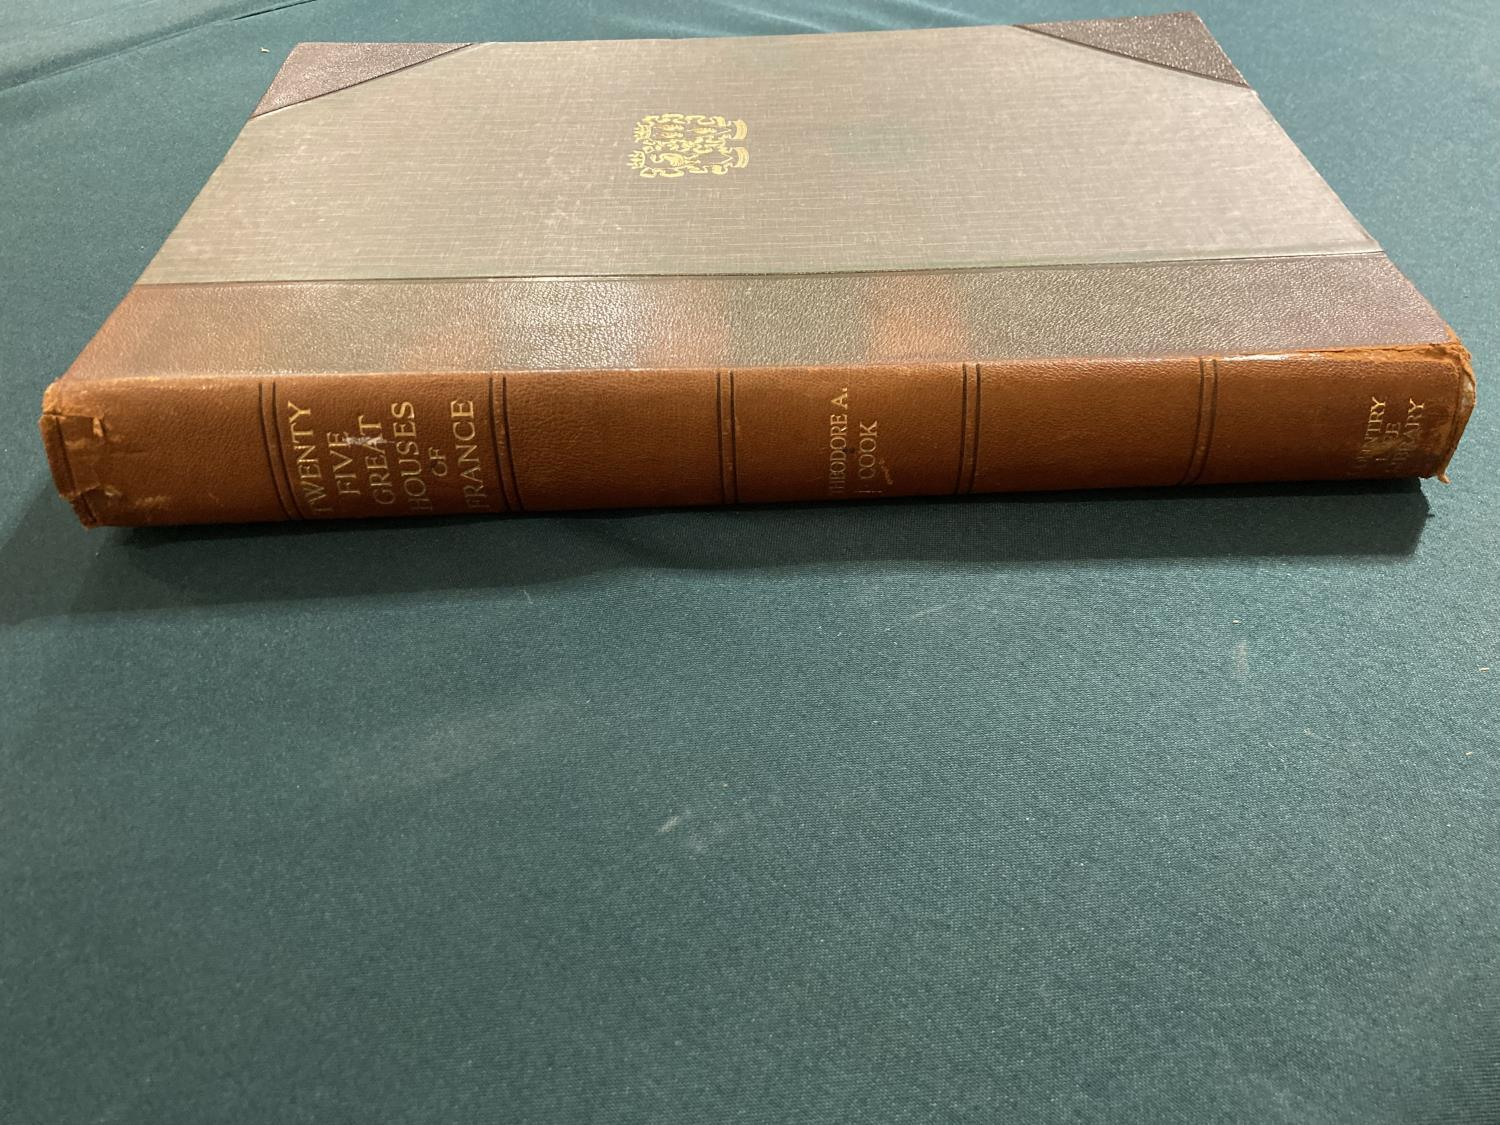 Bolton, Arthur T. The Architecture of Robert and James Adam, 2 volumes, first edition, plates, - Image 5 of 22